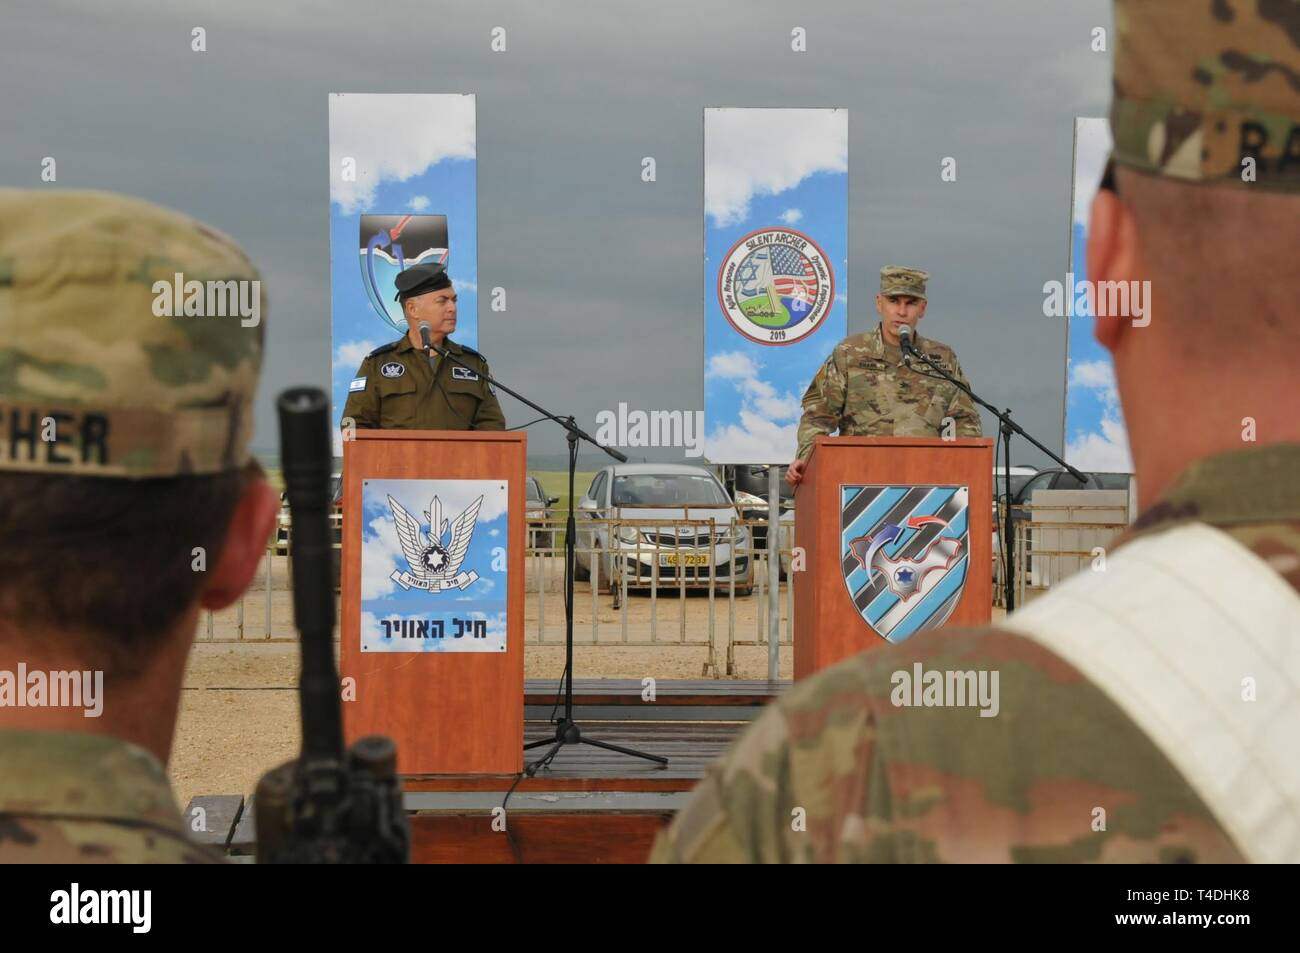 U.S. Army Col. David E. Shank, commander, 10th Army Air and Missile Defense Command, speaks during a closing ceremony for the Terminal High Altitude Area Defense system deployment to Israel, March 25, 2019. The ceremony concluded a first ever deployment of a THAAD battery, along with other supporting troops and equipment, to Israel under the Department of Defense's Dynamic Force Employment concept. - Stock Image